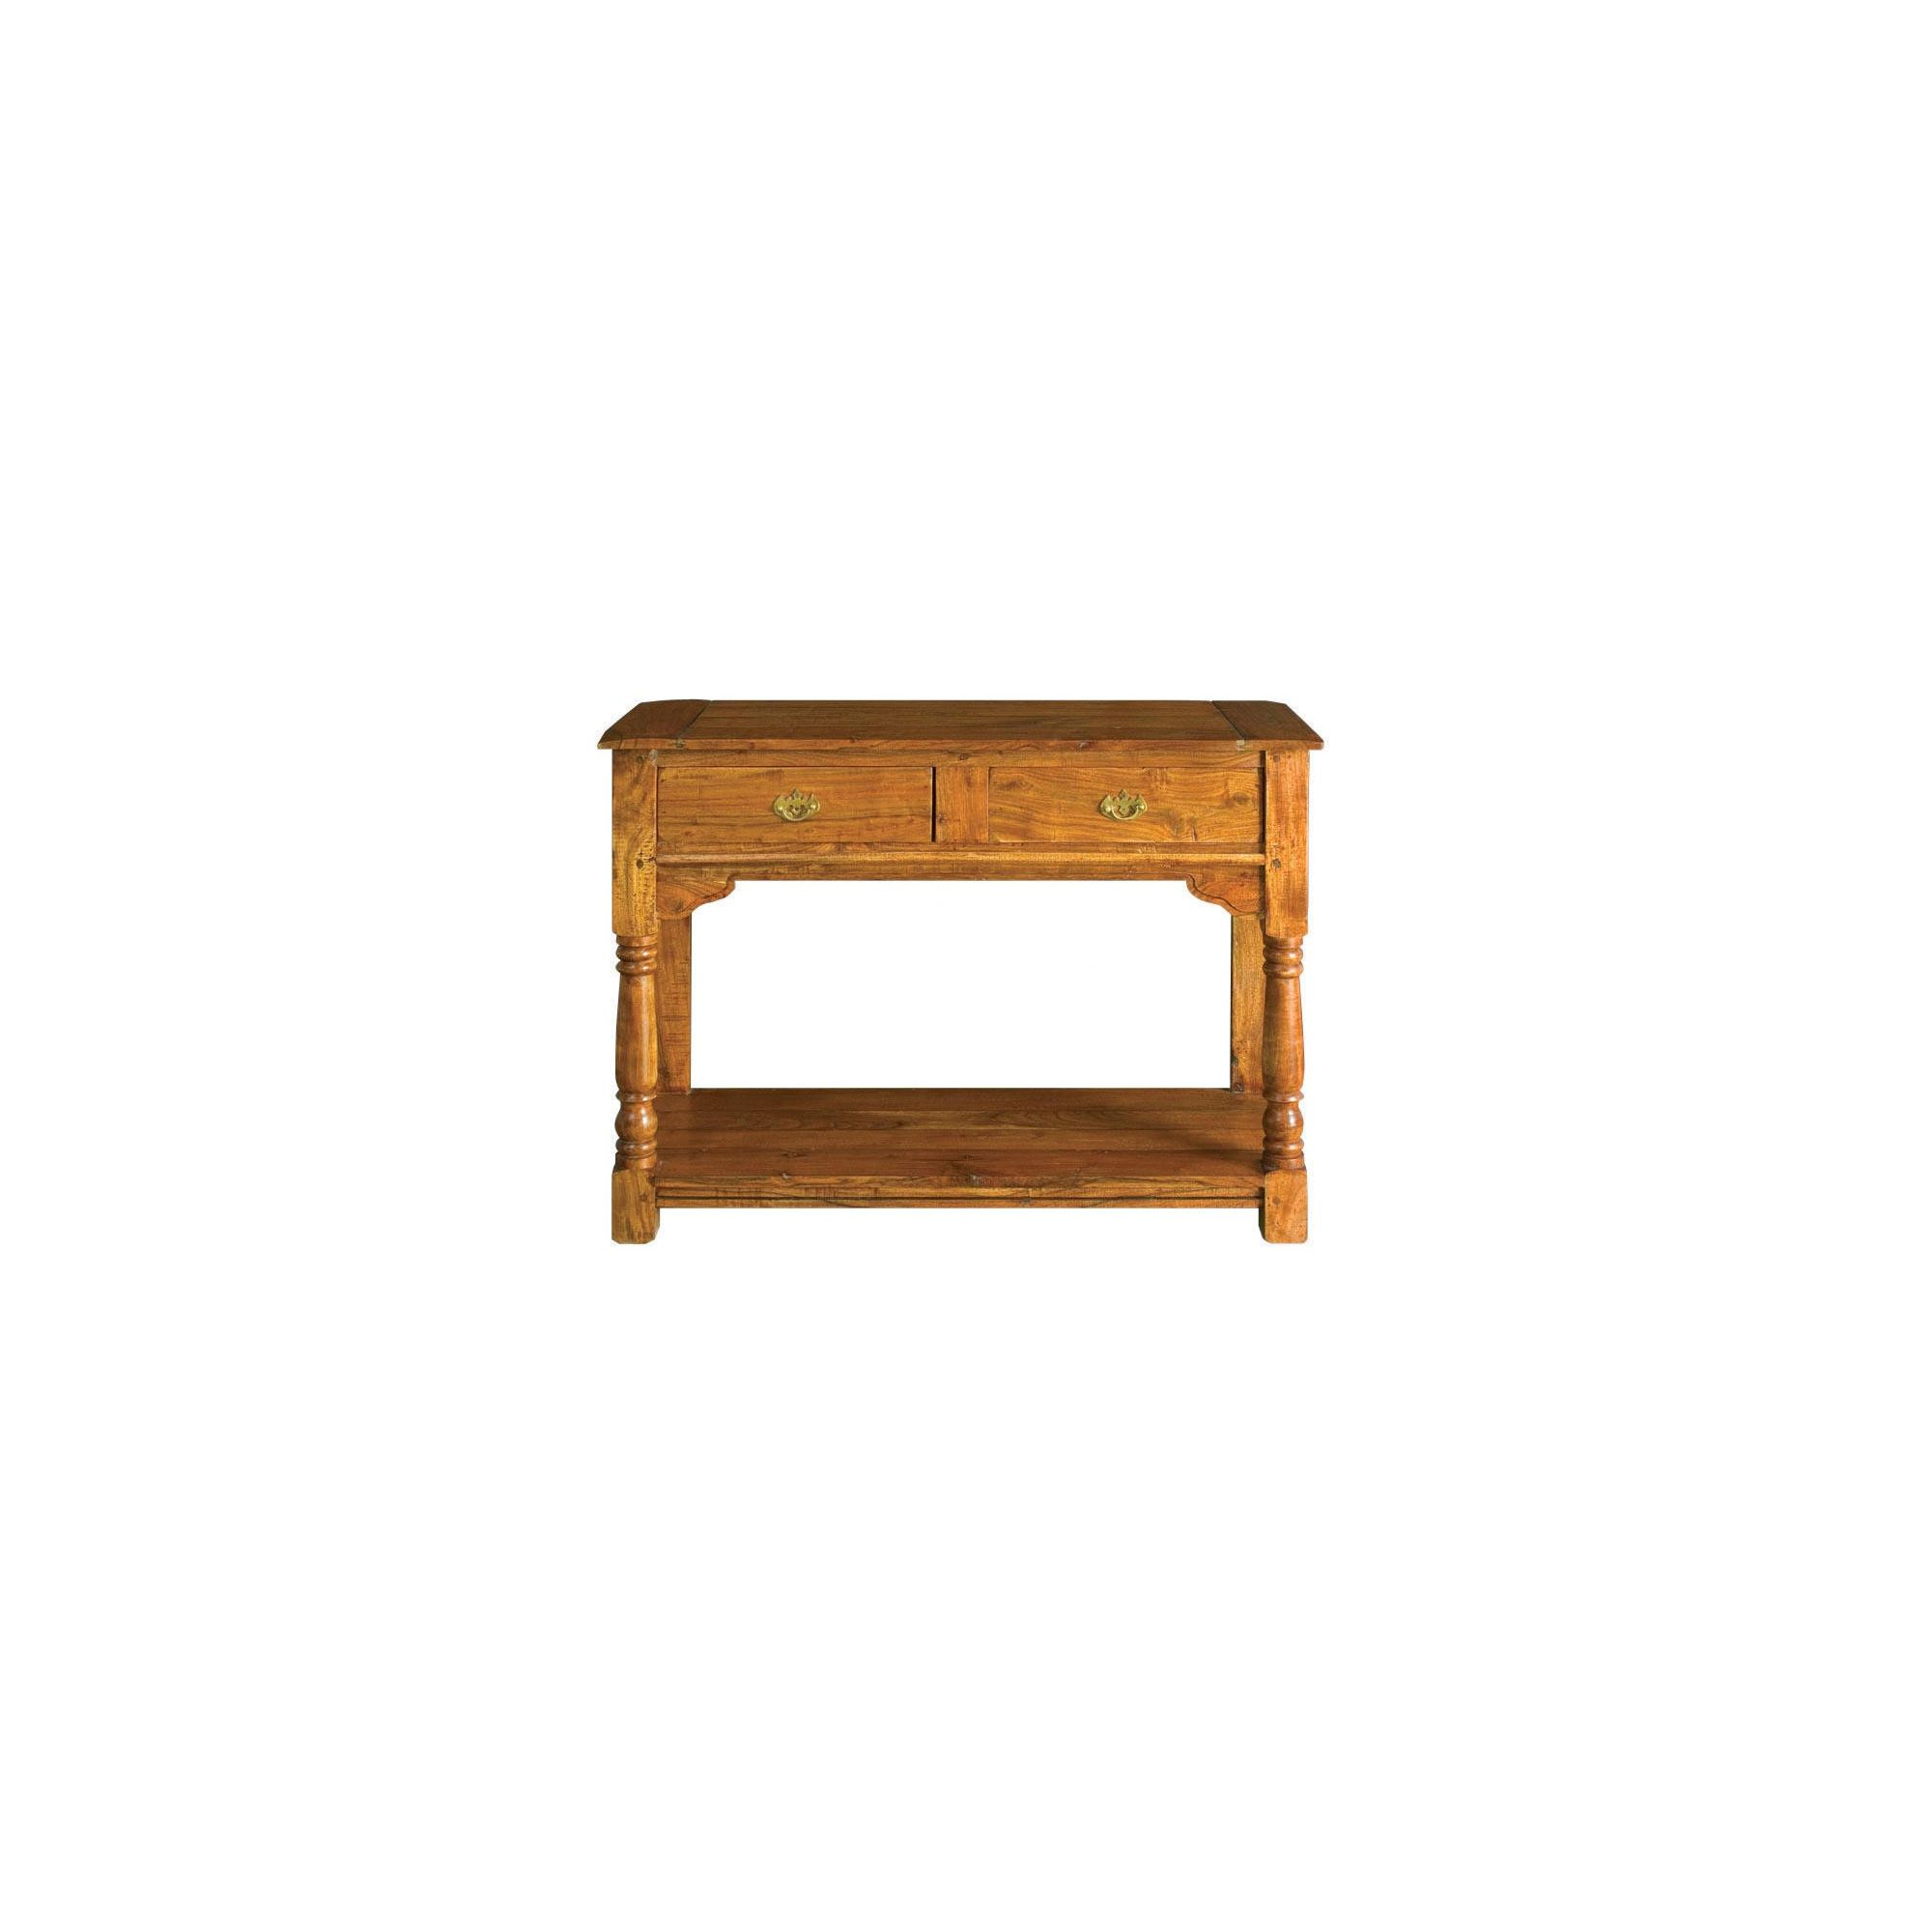 Alterton Furniture Granary Console Table